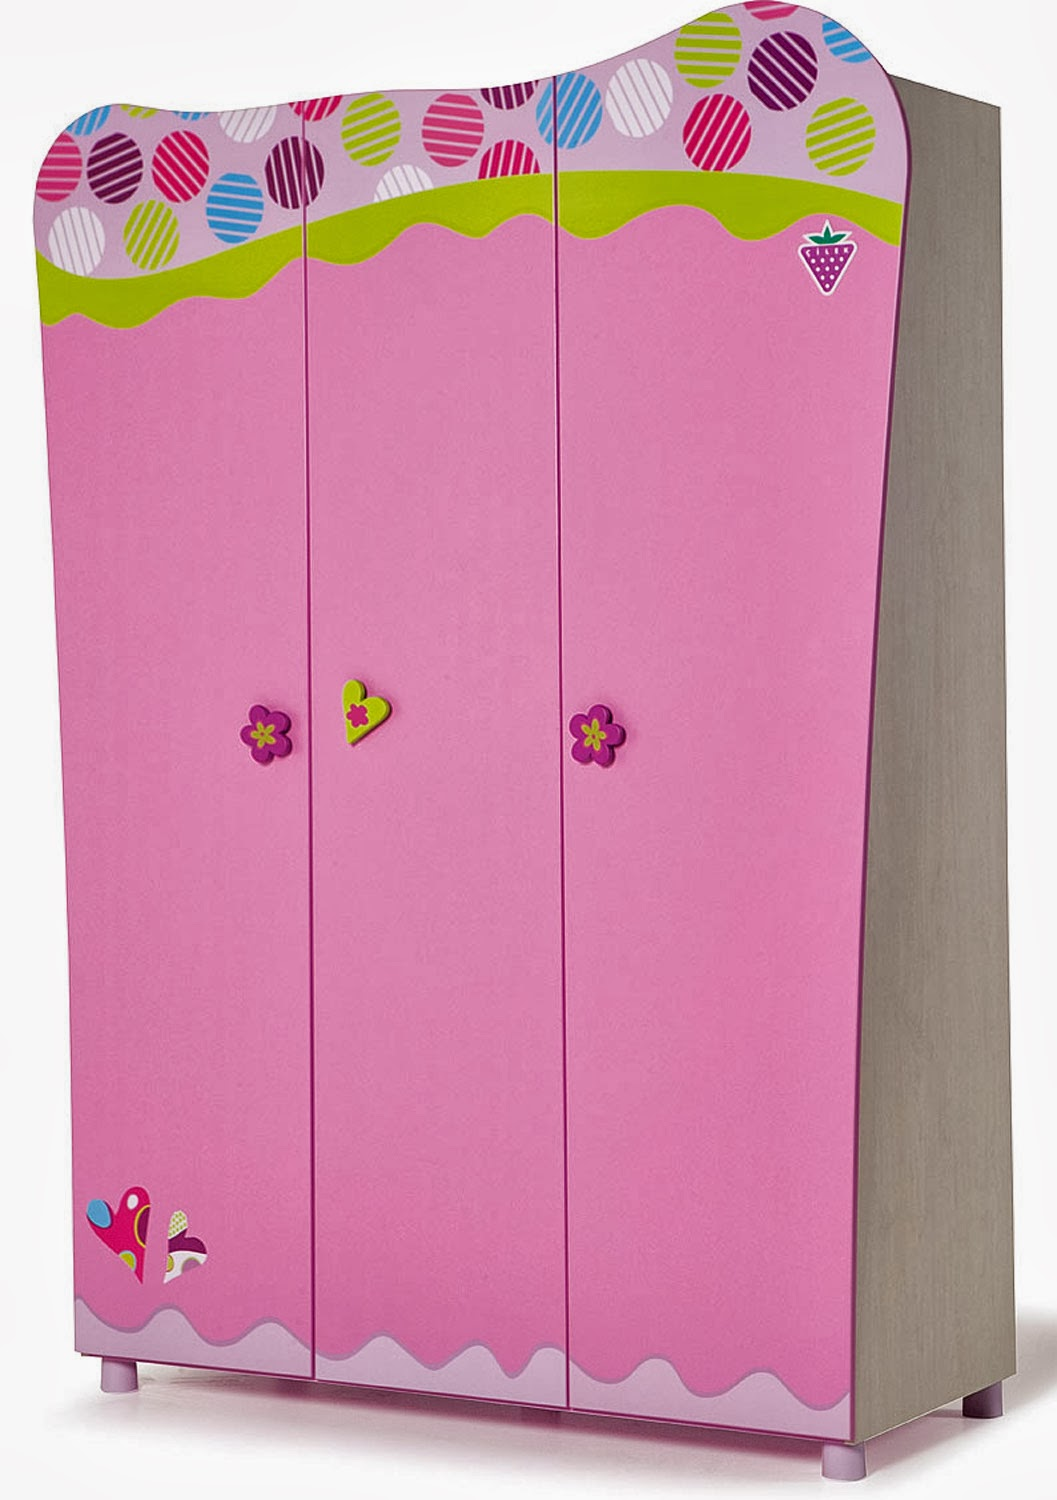 Wardrobe Kits Foundation Dezin And Decor Kids Wardrobe